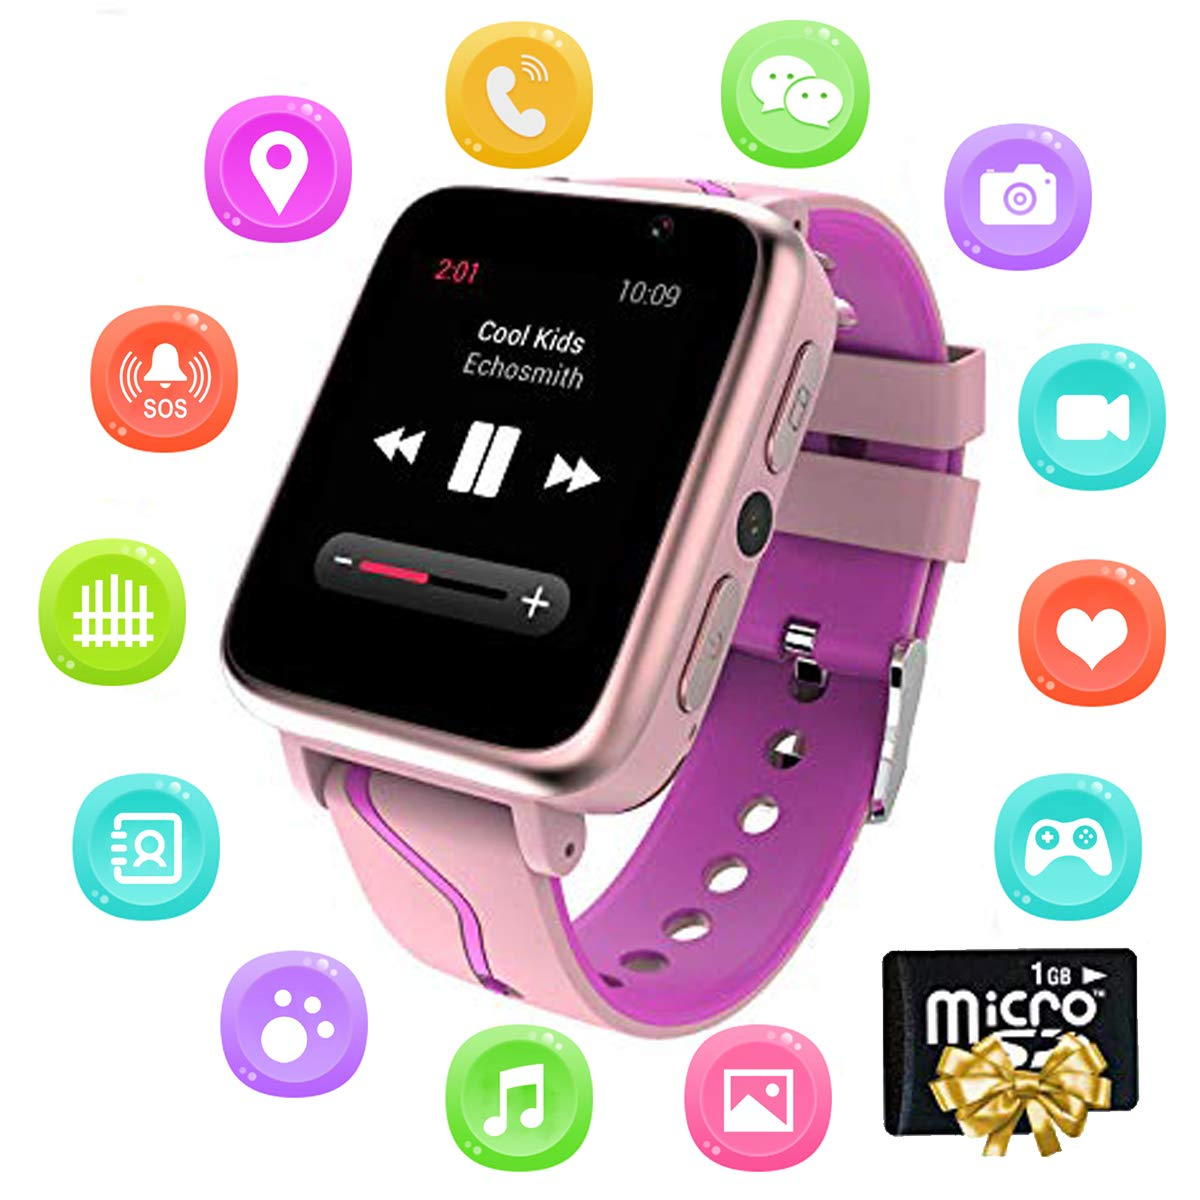 Kids Music Smart Watch - [1GB Micro SD Included for Music] HD Touch Screen Kids Smart Watch with SOS MP3 Music Player Voice Chat LBS Tracker Camera ...